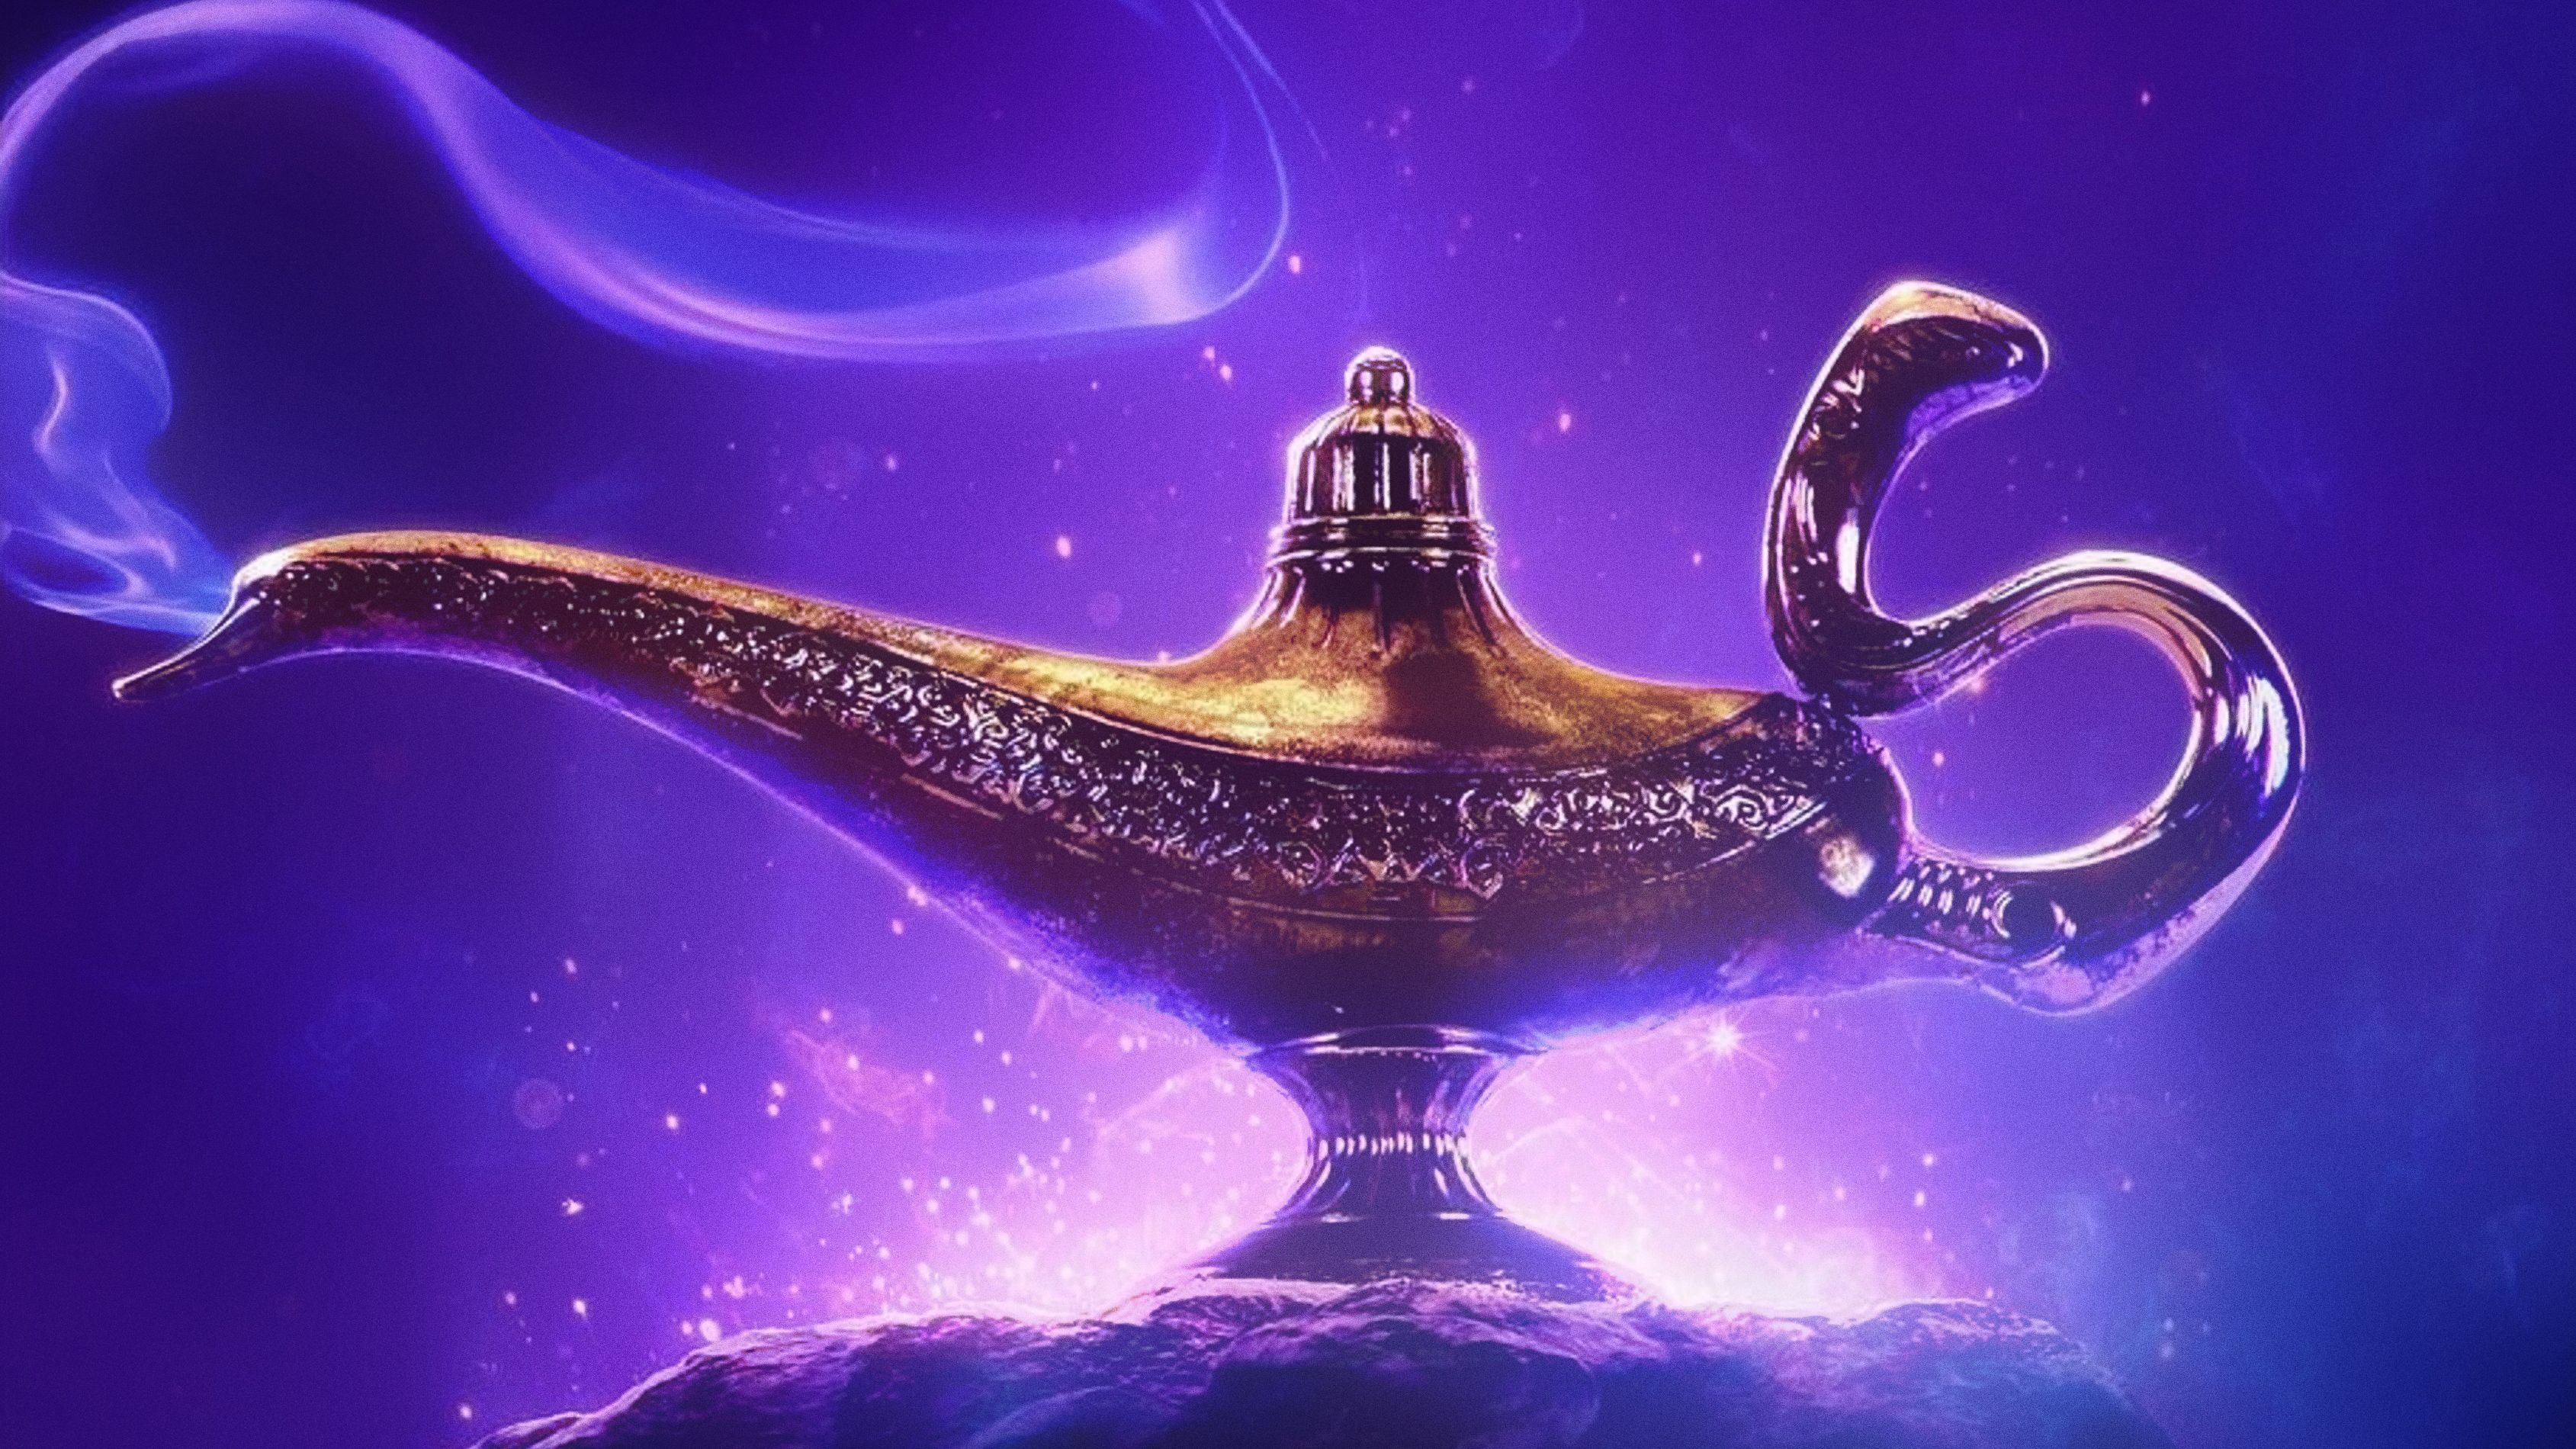 3378x1900 Aladdin Movie 2019 4k, HD Movies, 4k Wallpapers, Images ...